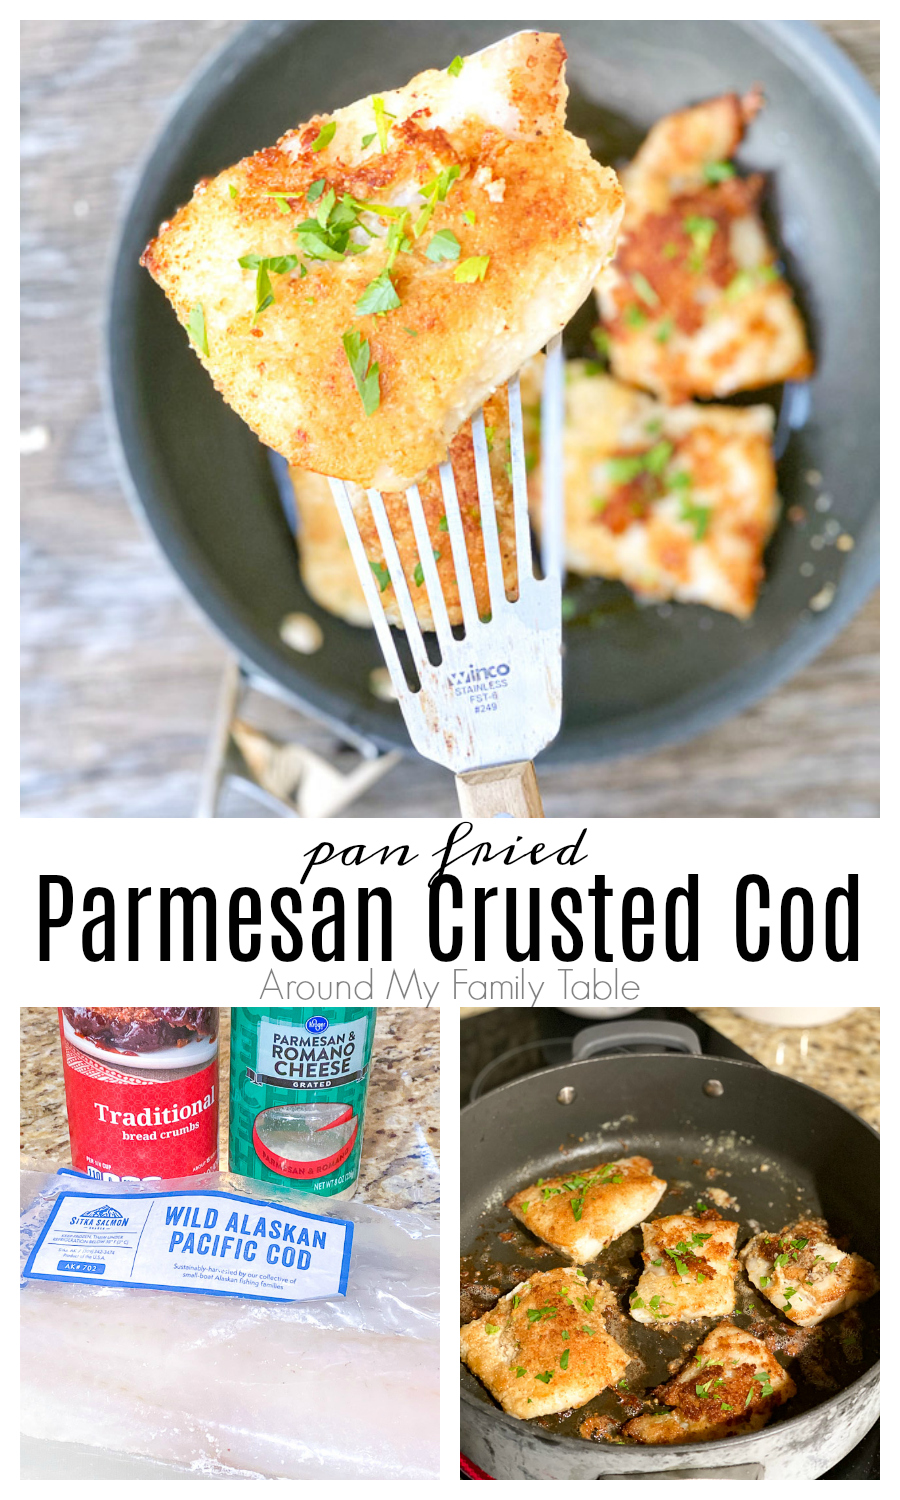 Parmesan Crusted Cod is a new family favorite. It's so simple and delicious and takes less than 30 minutes from freezer to table, including side dishes. via @slingmama